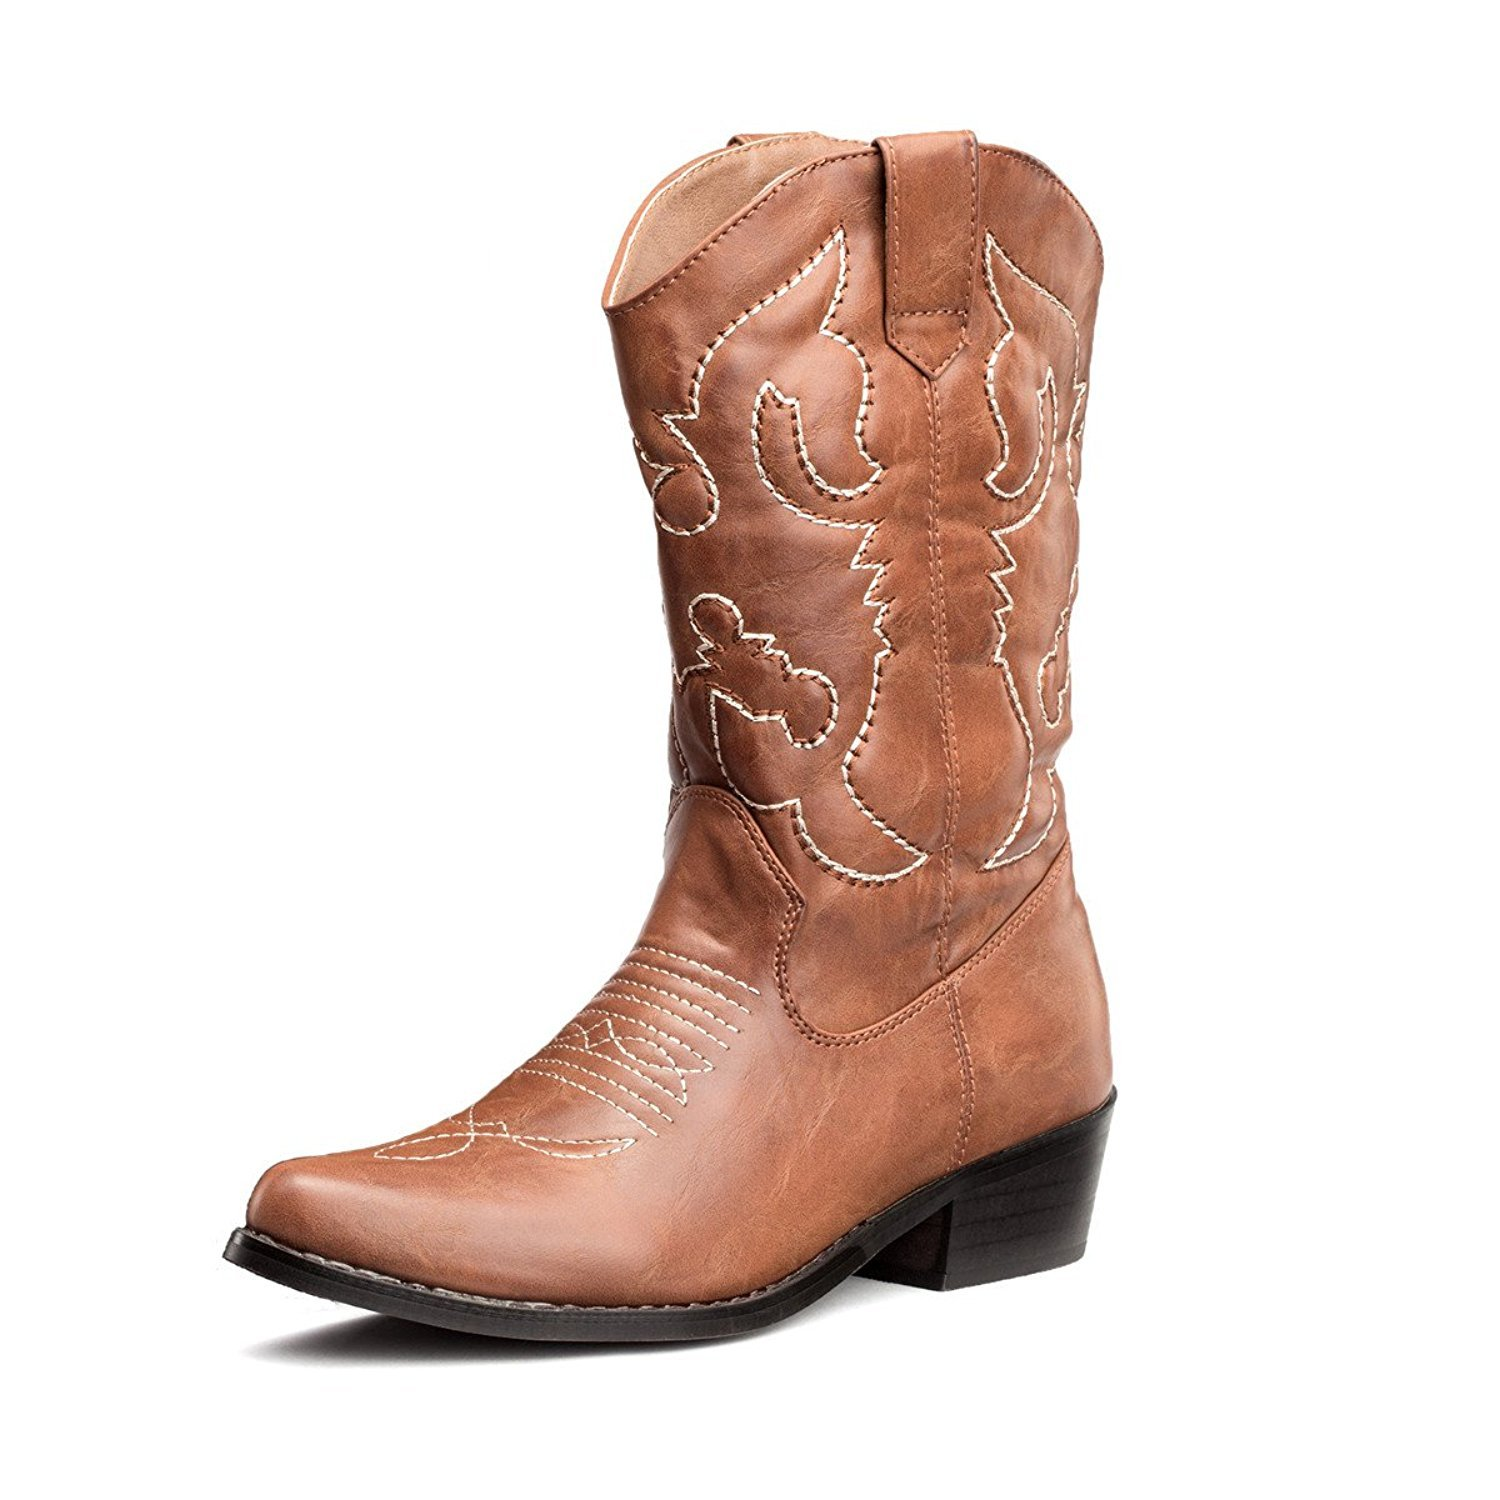 SheSole Women's Western Cowgirl Cowboy Boots Tan Size 11